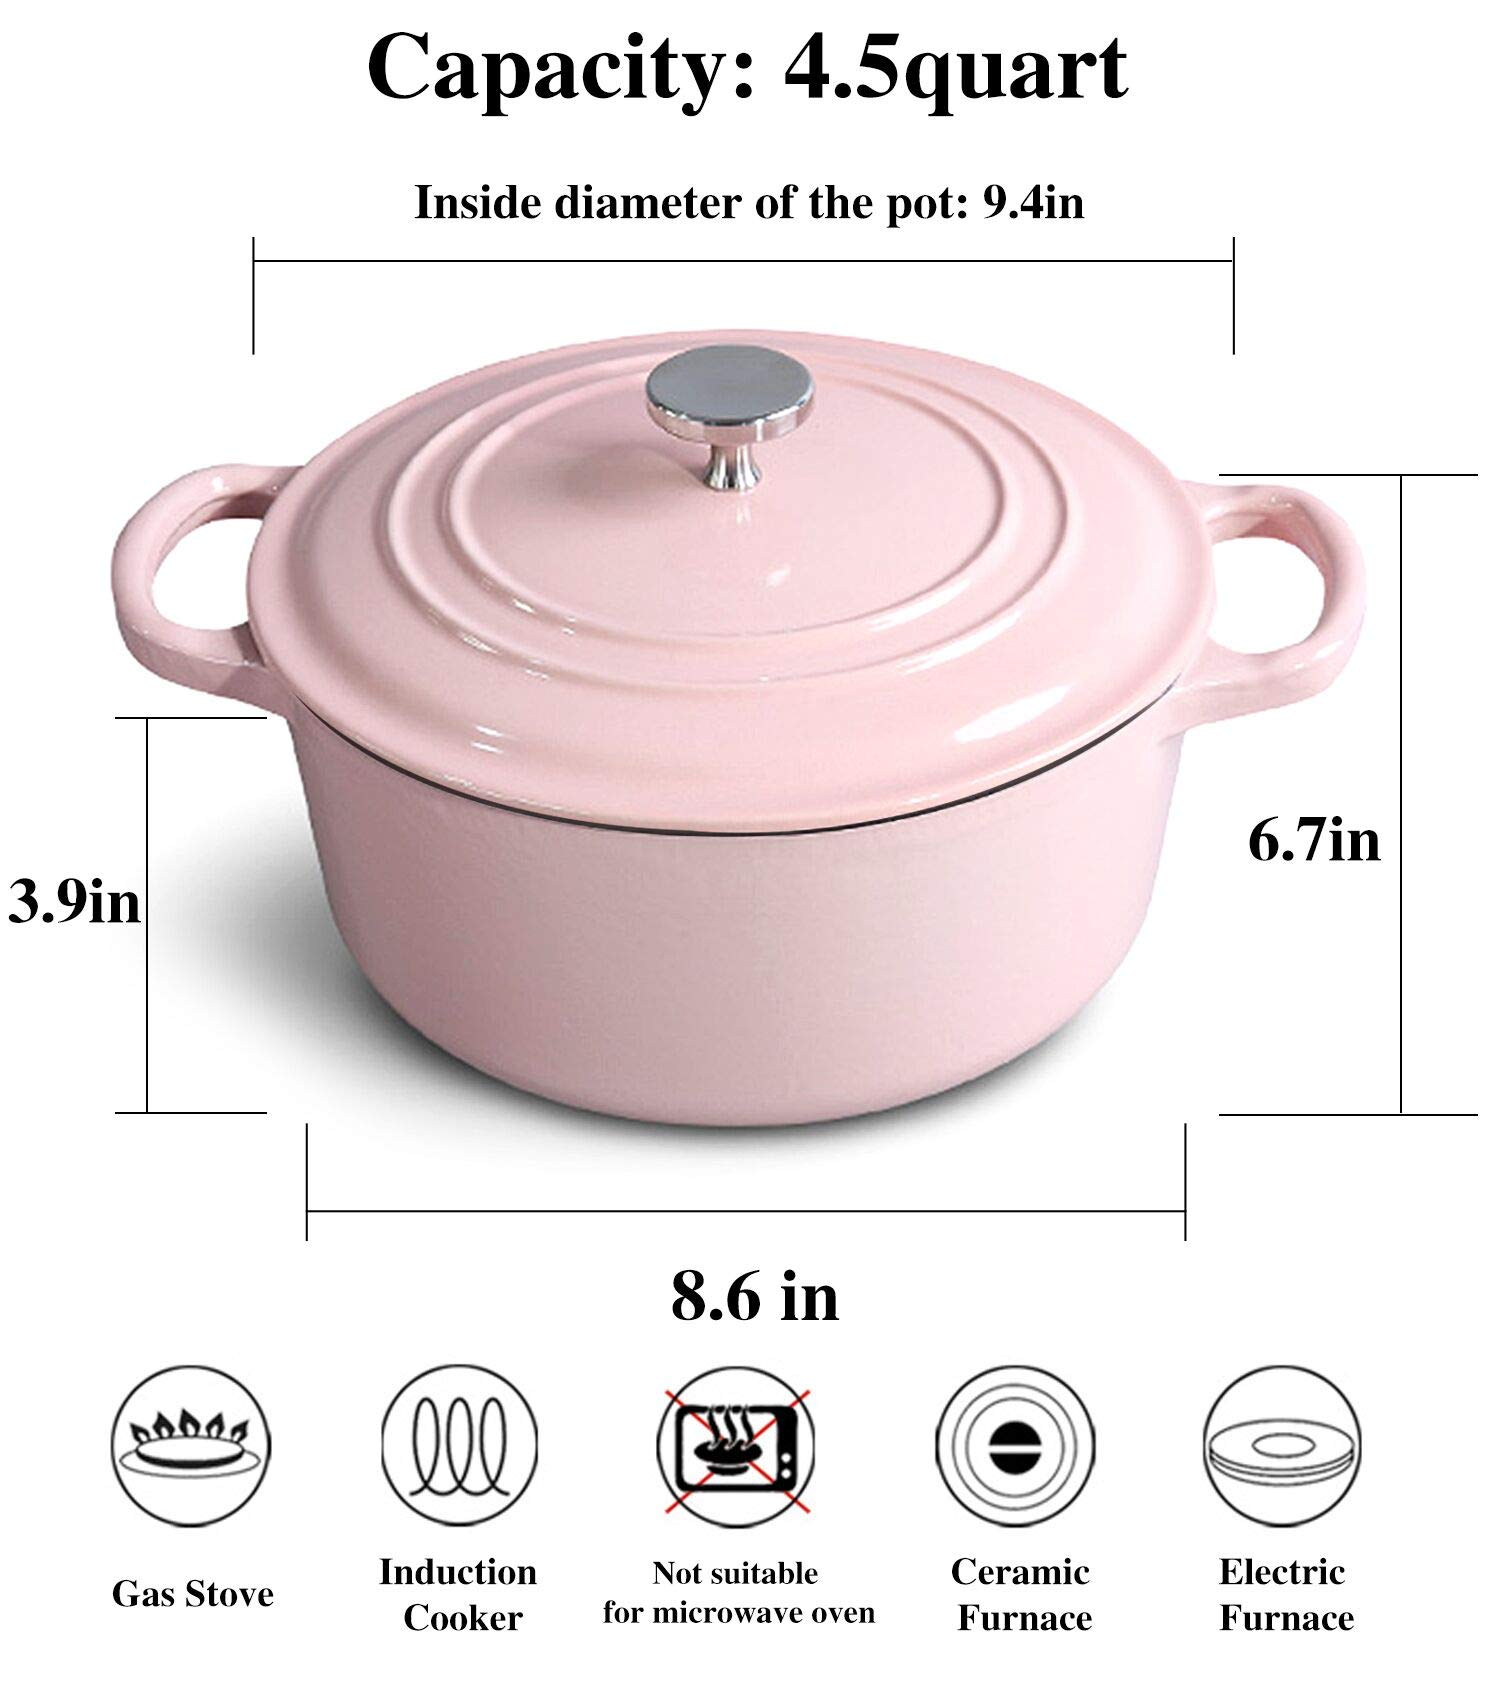 M-cooker 4.5 Quart Enameled Cast Iron Pot with Self Basting Lid,Classic Mint Blue Enamel Dutch Oven (Pink) by ClearSea (Image #6)